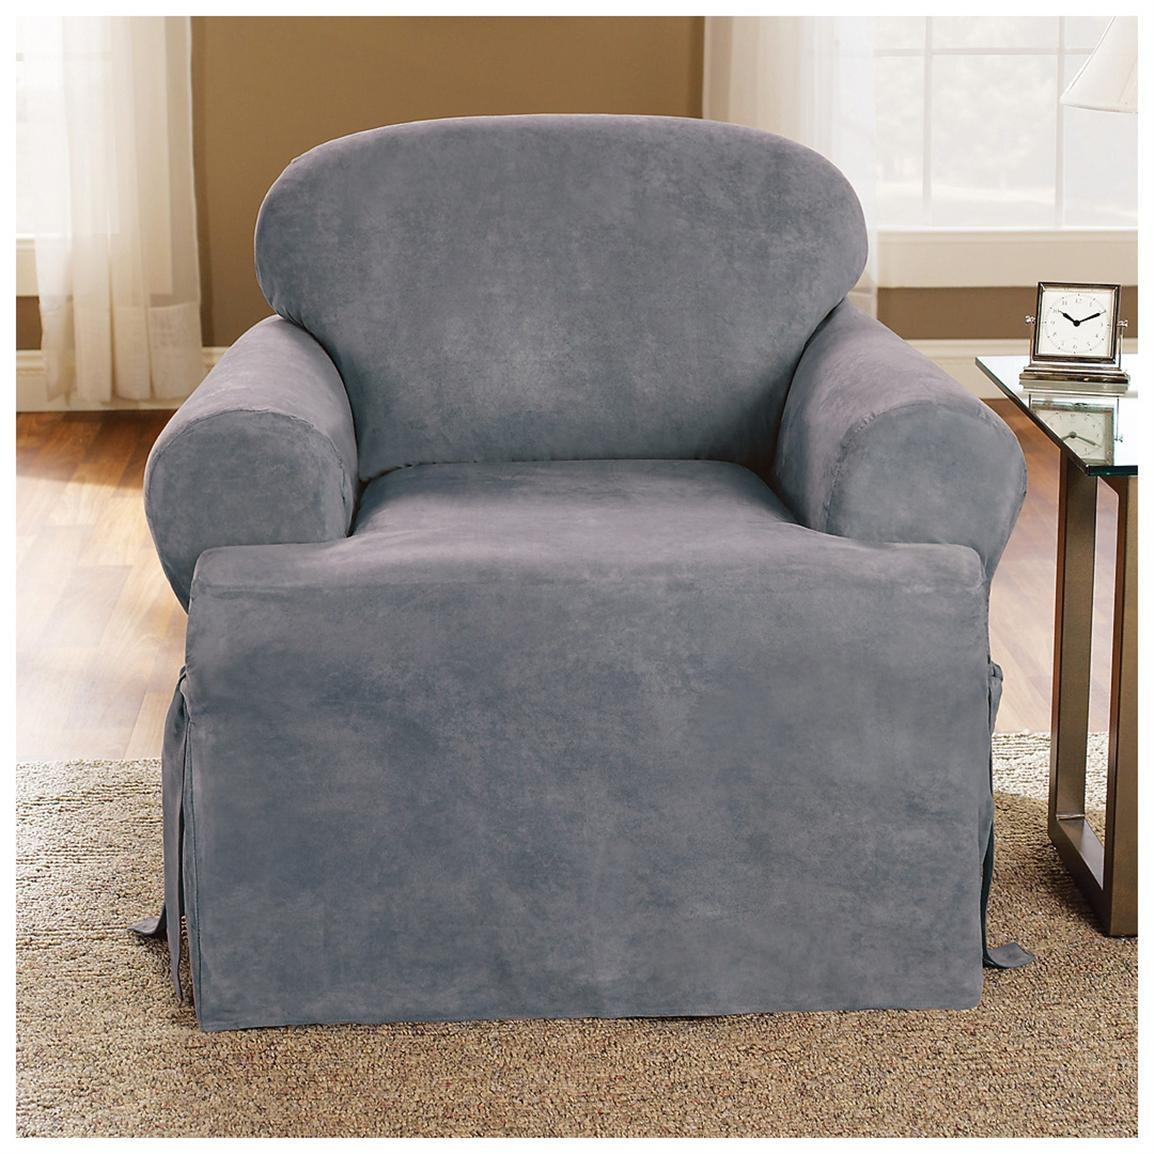 cheap slipcovers for sofas large corner sofa and chair 20 best collection of t cushion